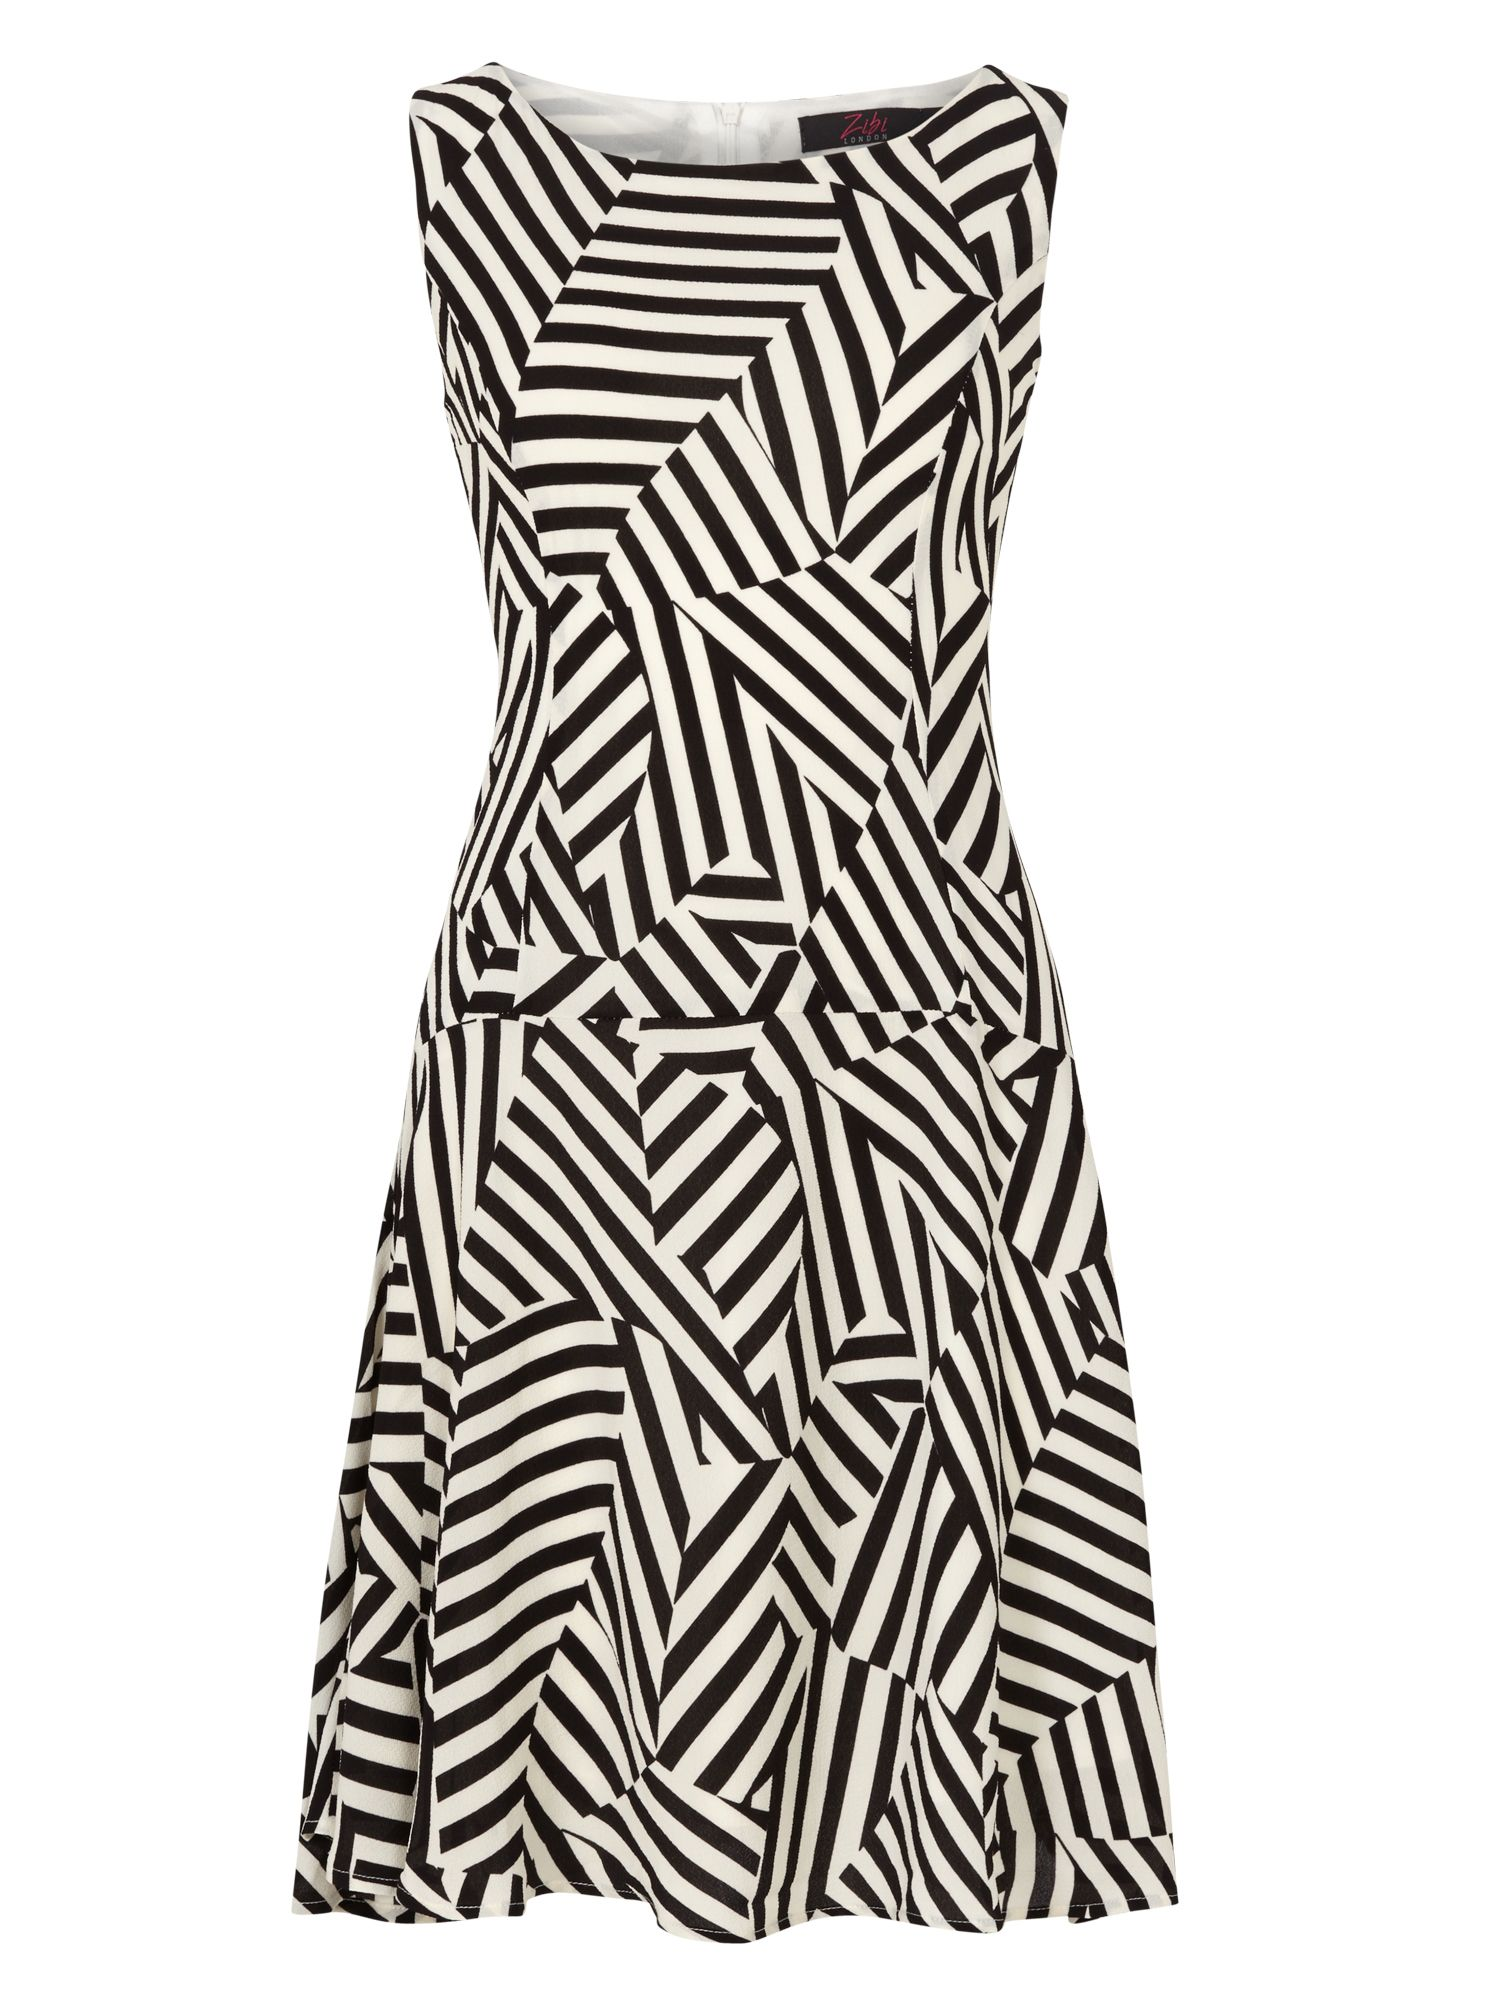 Zibi London Cutabout Stripe Crepe Dress